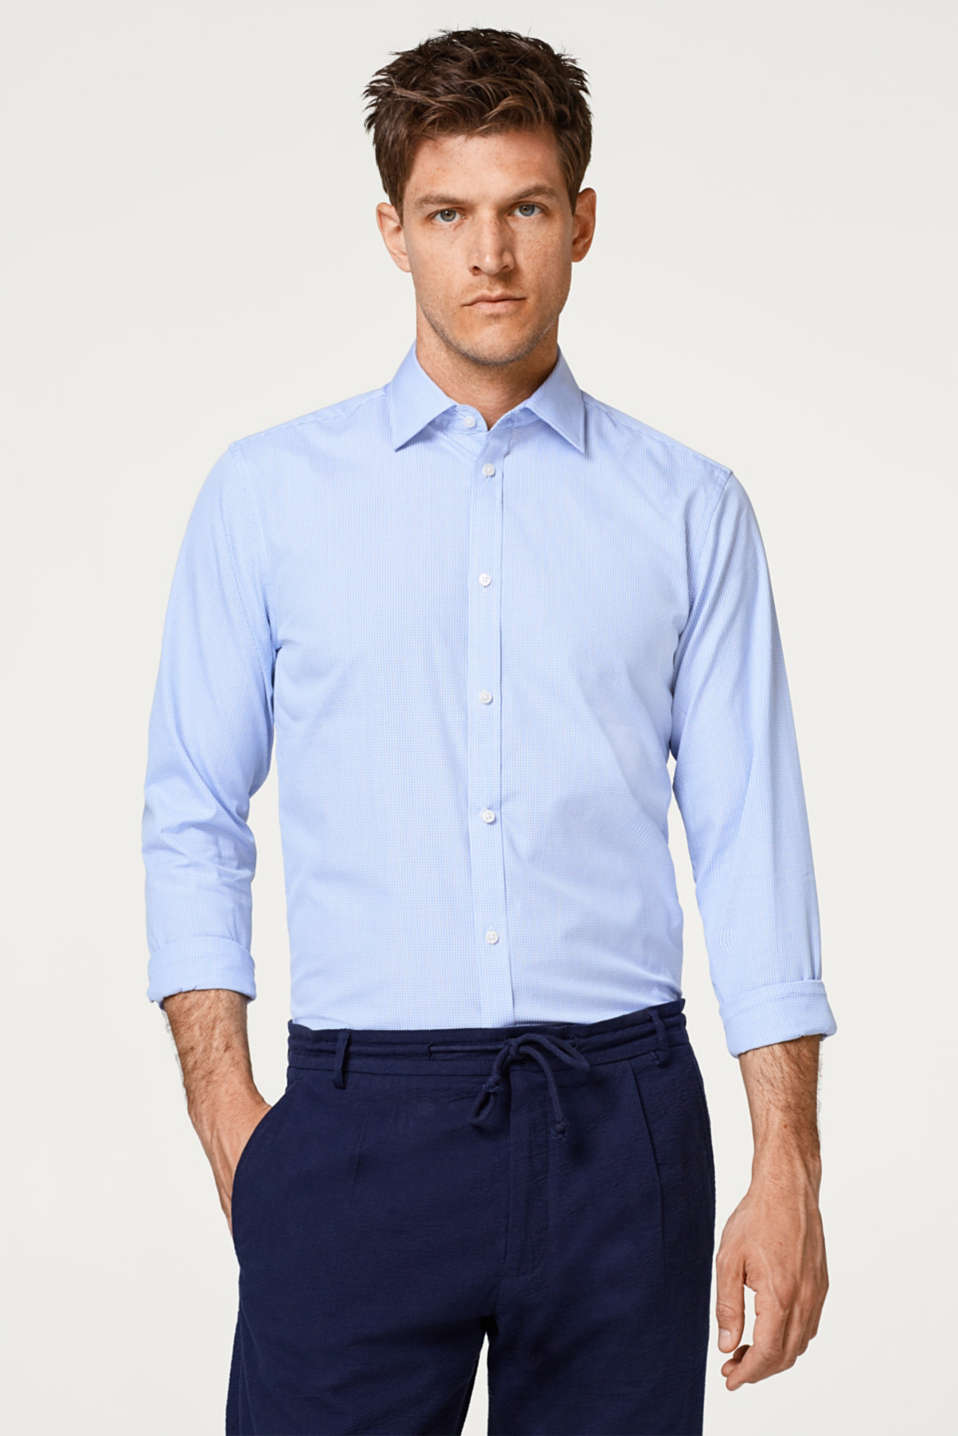 Esprit - Shirt with mini checks, made of 100% cotton